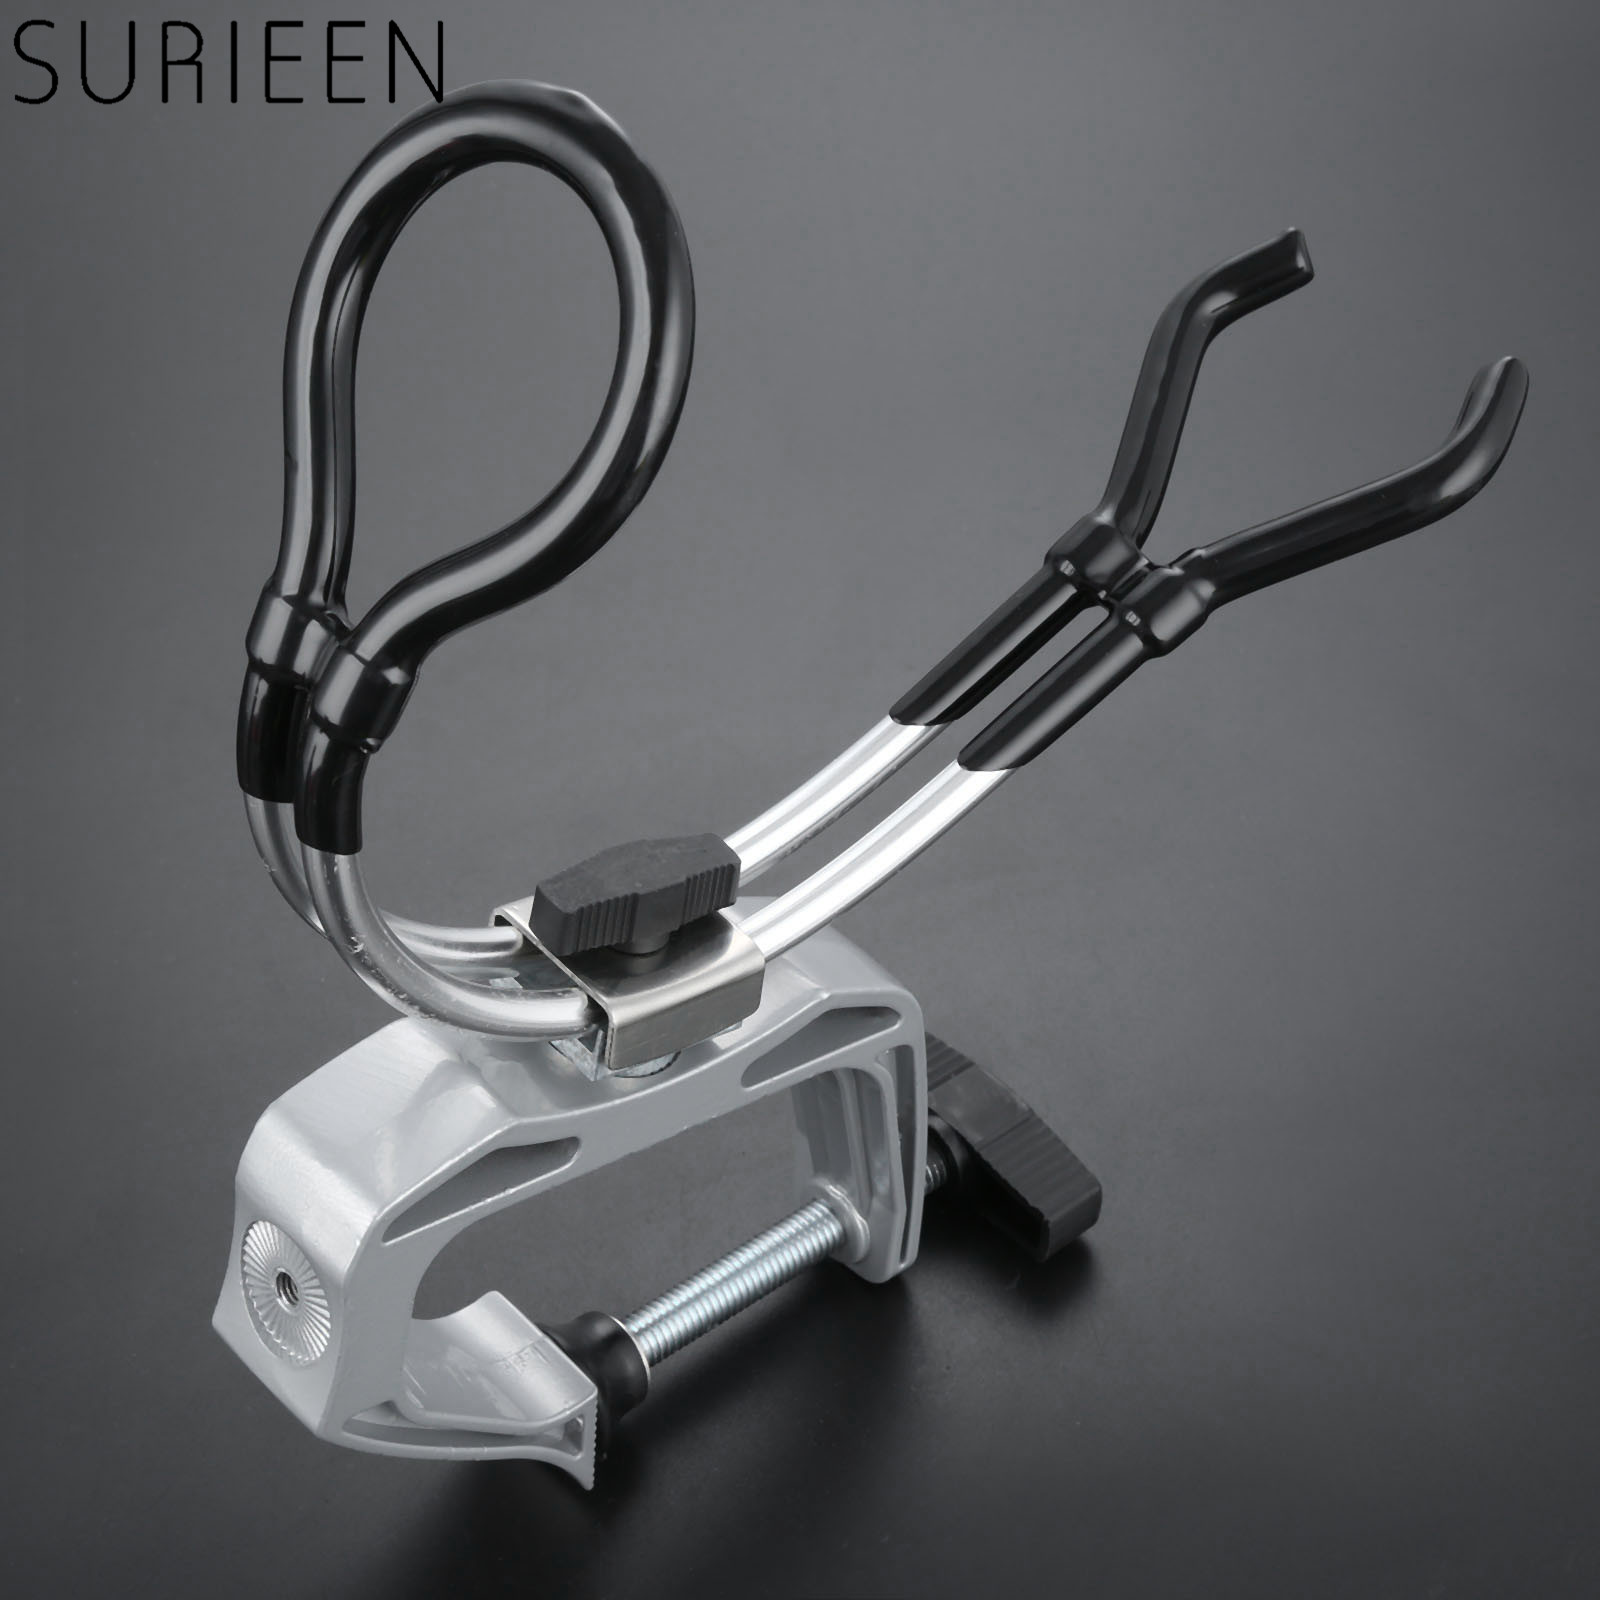 SURIEEN Boat Marine Fishing Rod Holder Aluminium Fish Rod Pole Stand Bracket Support Holder Adjustable Clamp Fishing Tackle Tool